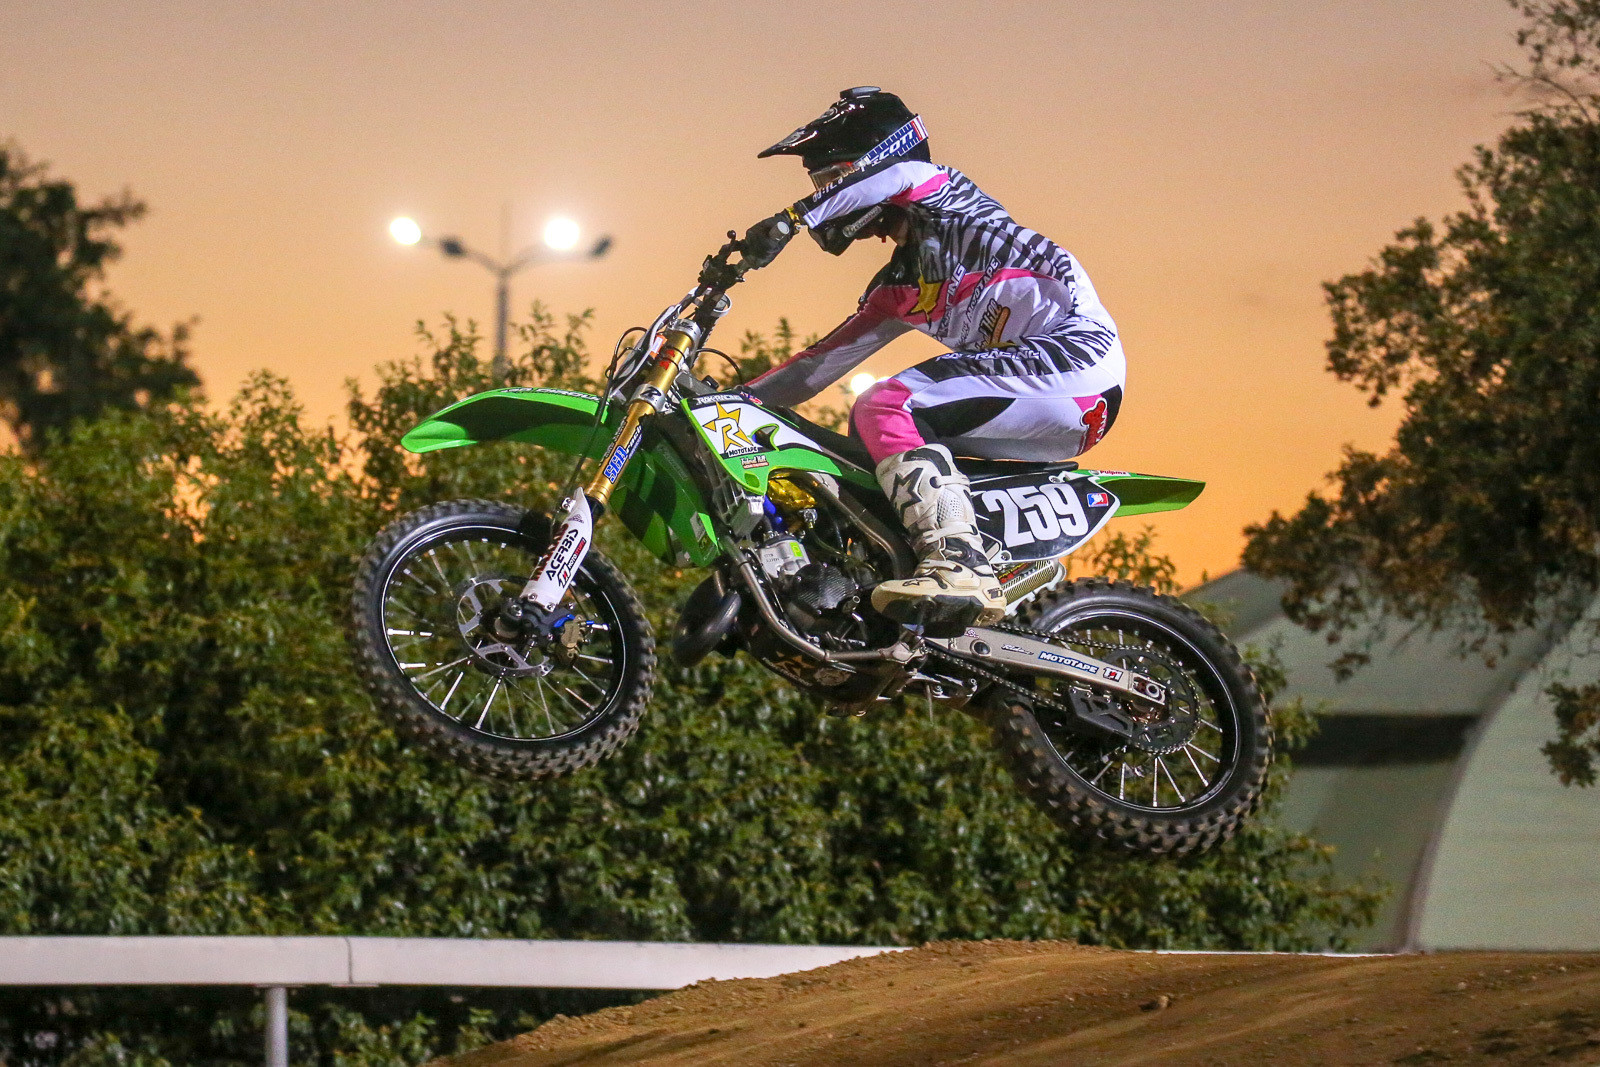 Besides the two-stroke action, there was also a serious throwback theme for the event. We had a tough time deciding who did it best, with the James Stewart-themed '04 KX125 that Spencer Luczak built up. AJ Catanzaro was on board and flying.